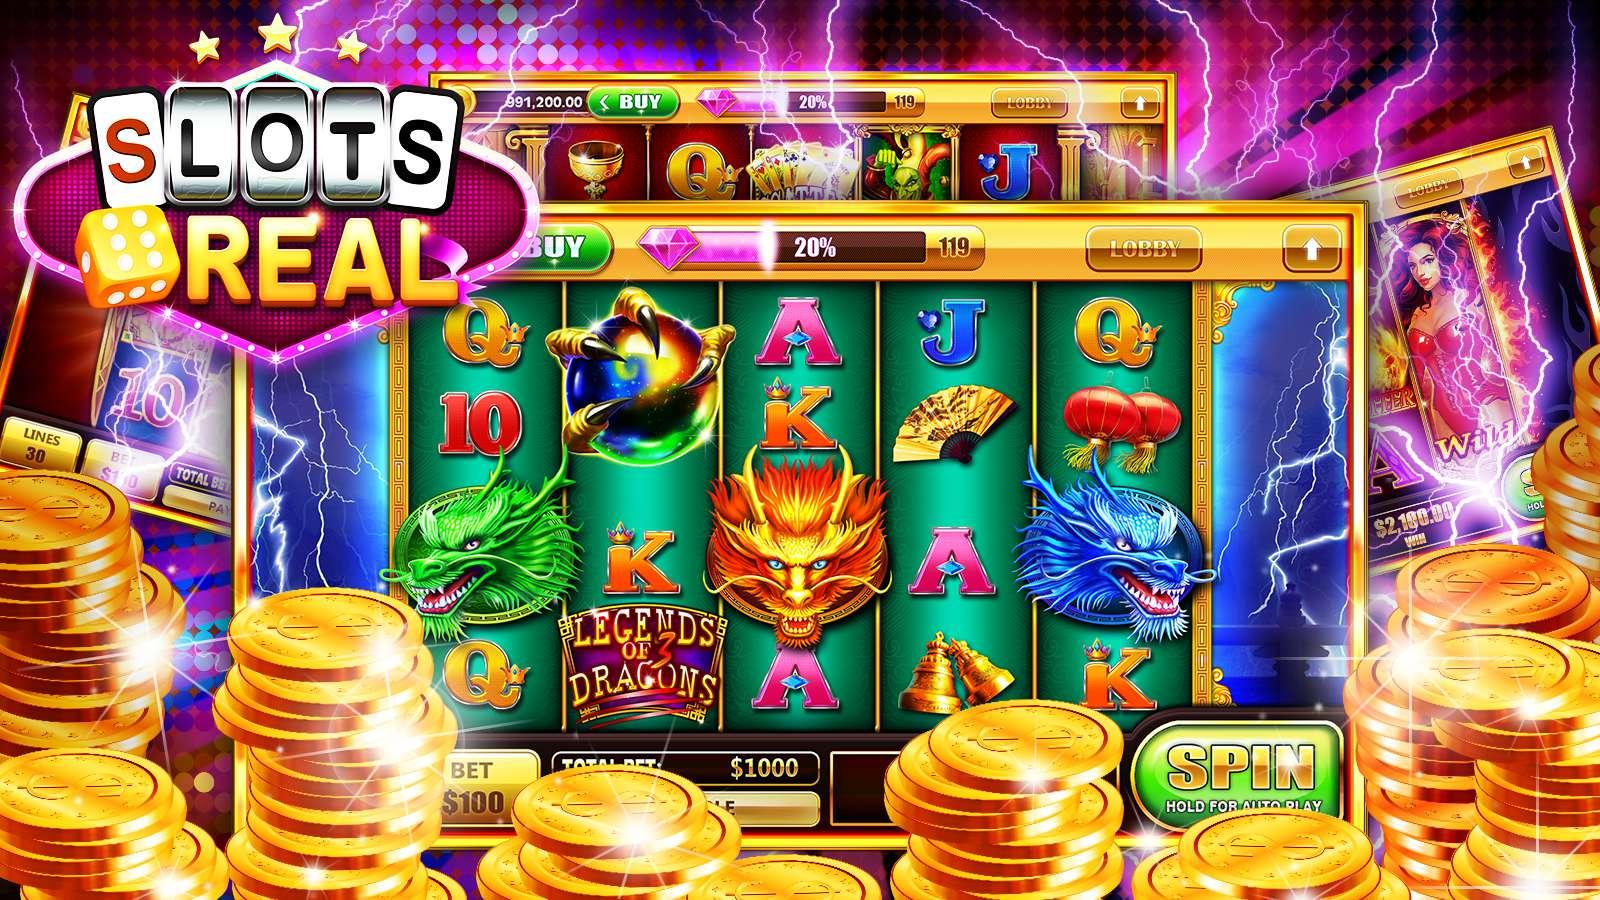 Slots machines euro real - 788061